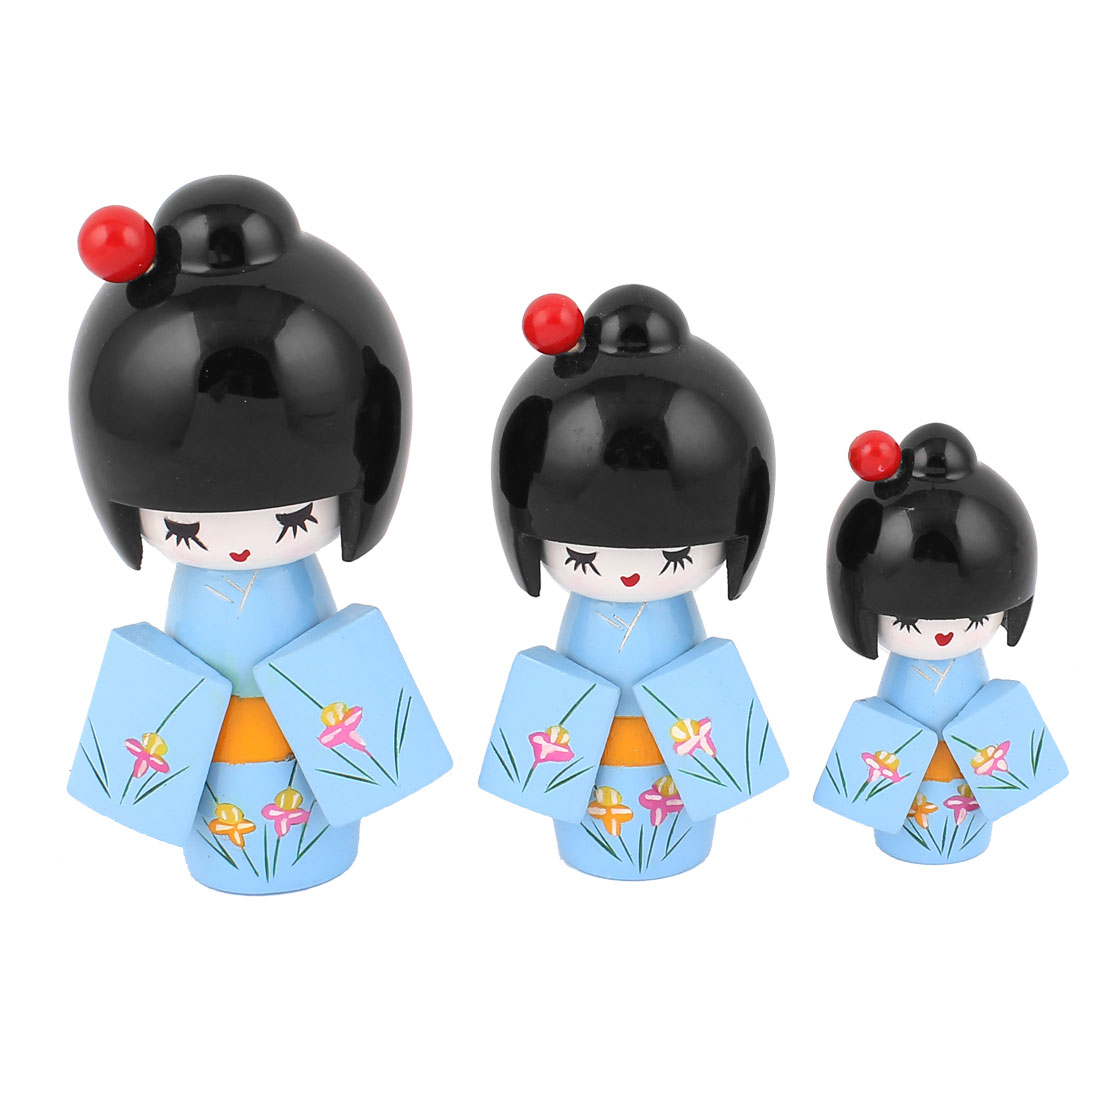 3 in 1 Handmade Floral Detail Kimono Wooden Craft Japanese Kokeshi Doll Blue